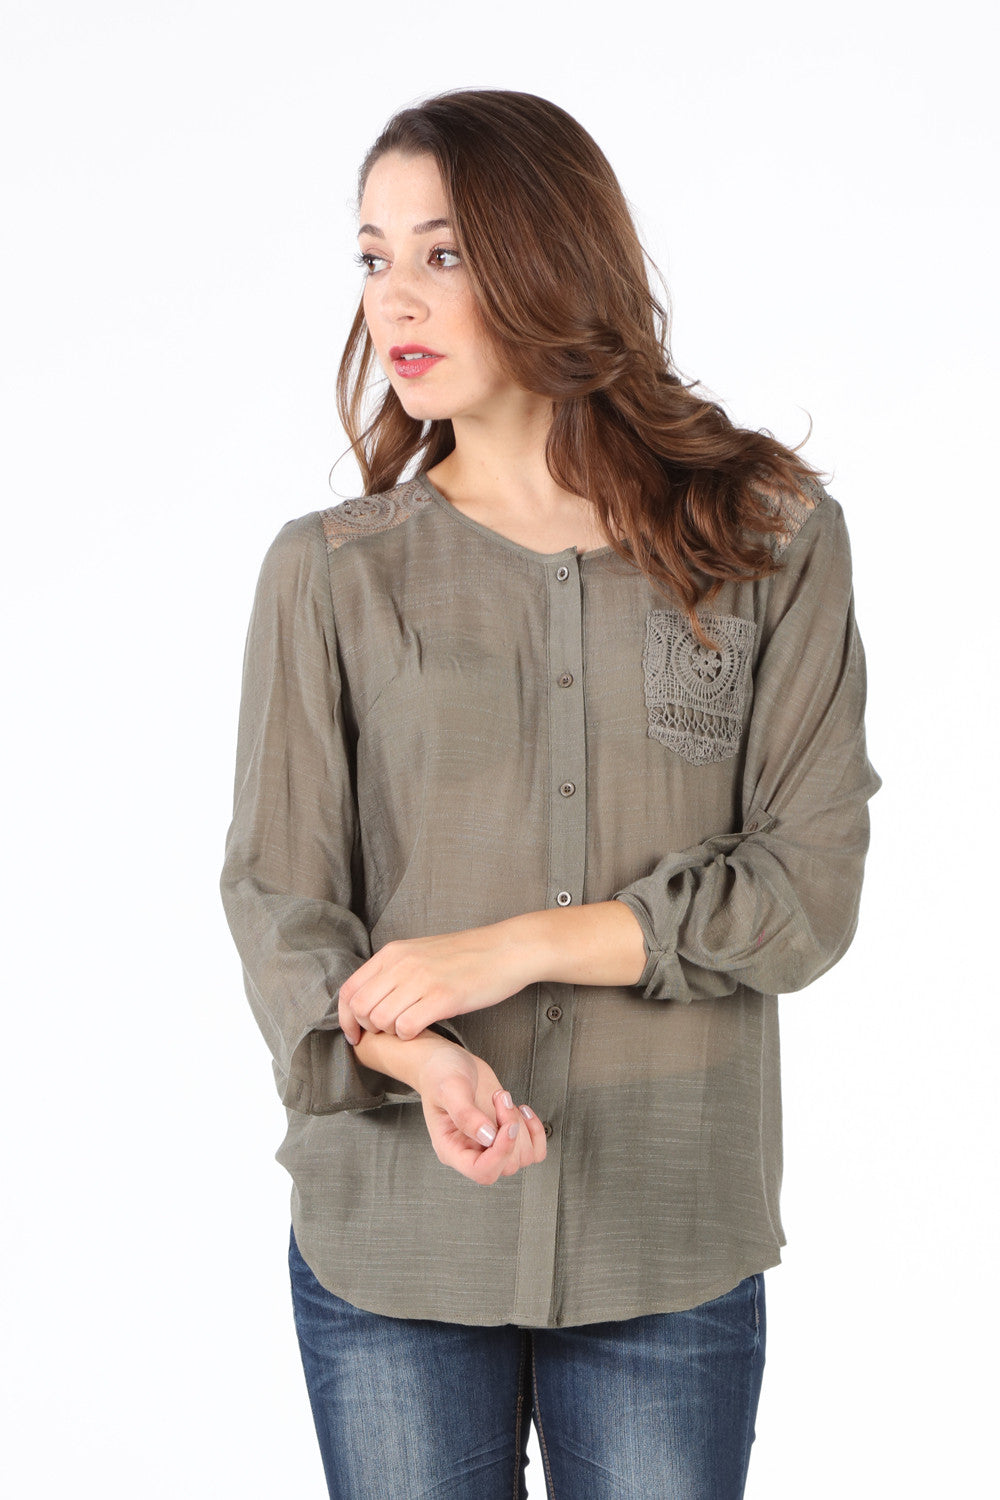 SB183 Olive Crochet Trim Blouse